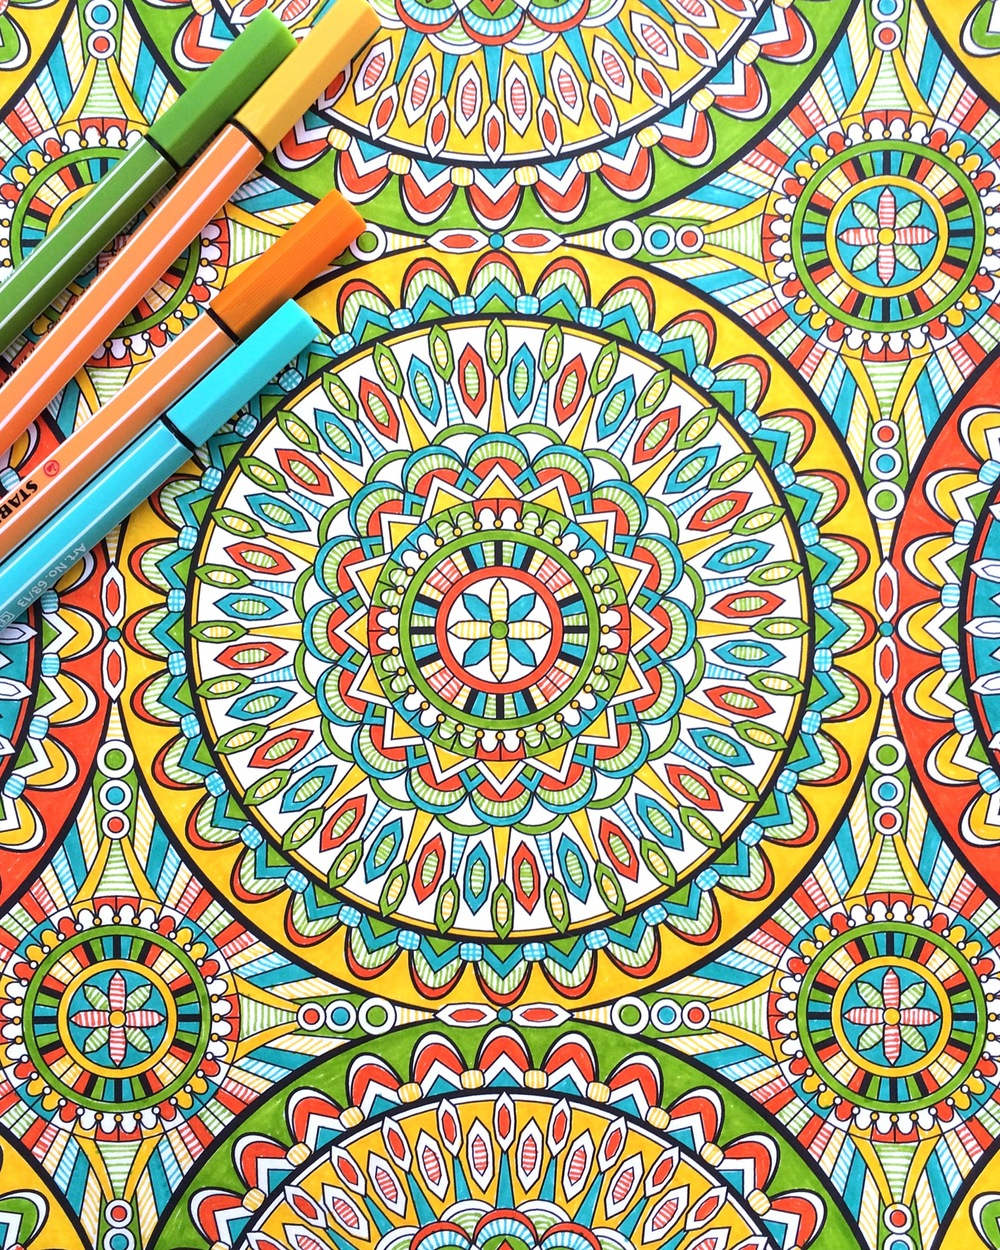 Super Awesome Coloring Book by Mark Cesarik, edited by Jenean Morrison